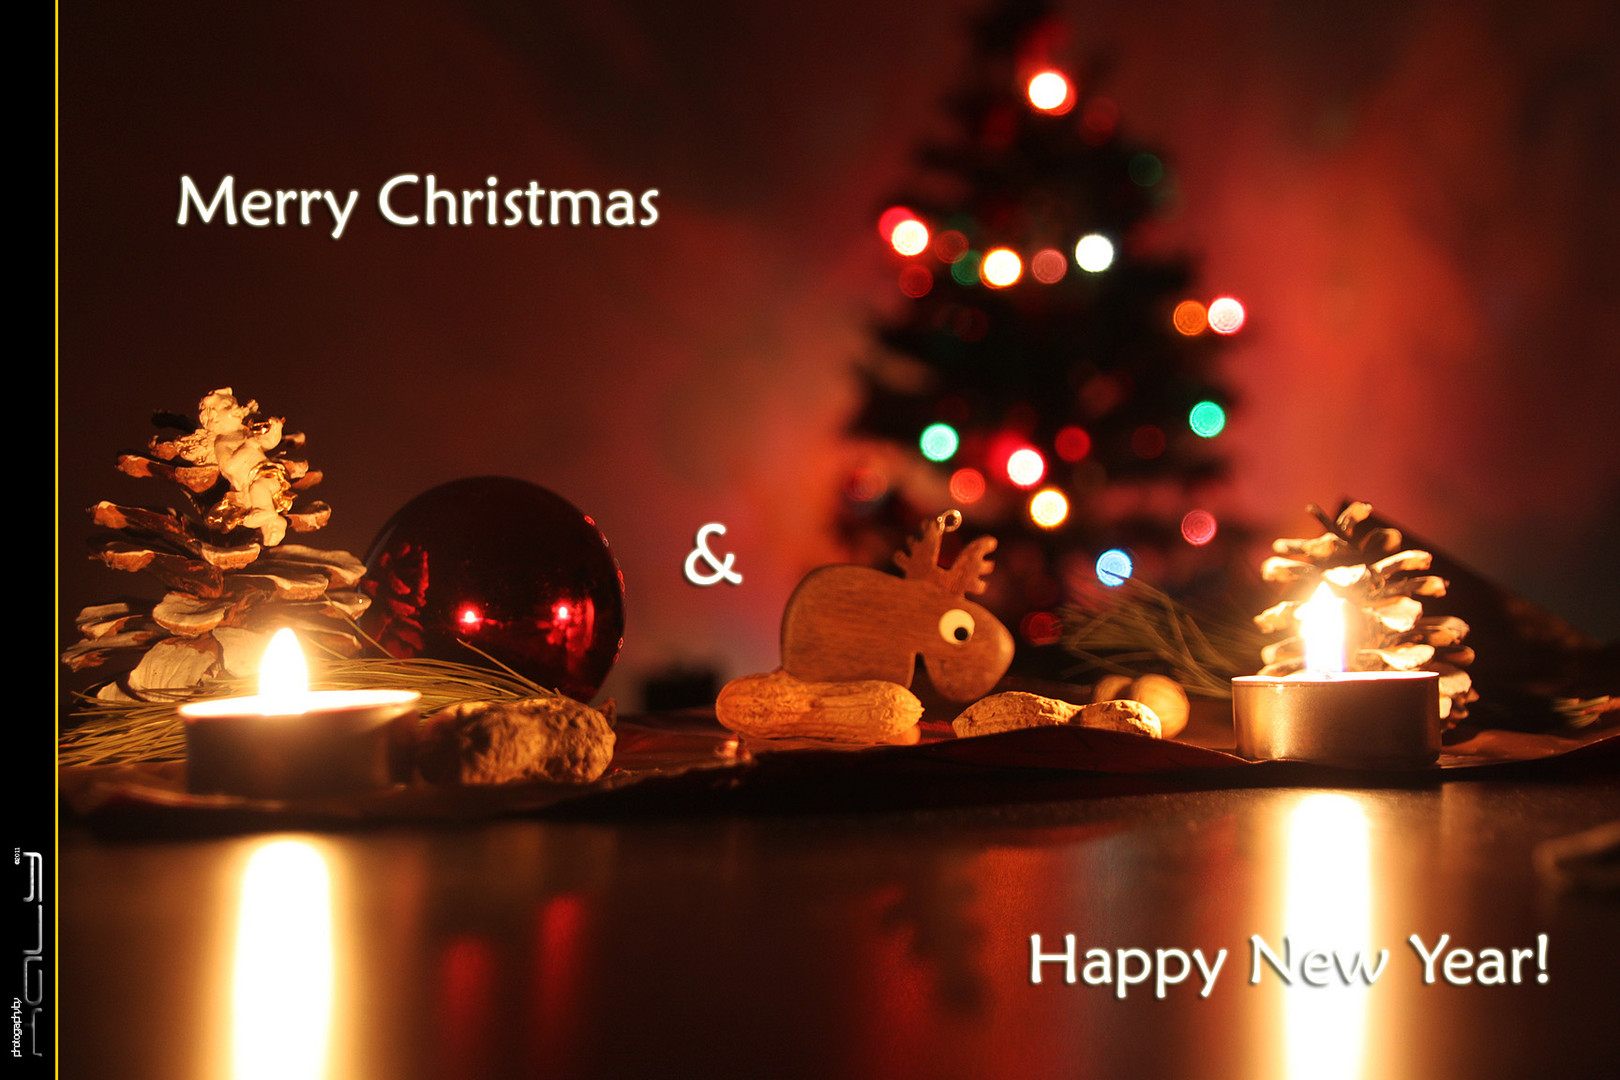 Merry Christmas + Happy New Year